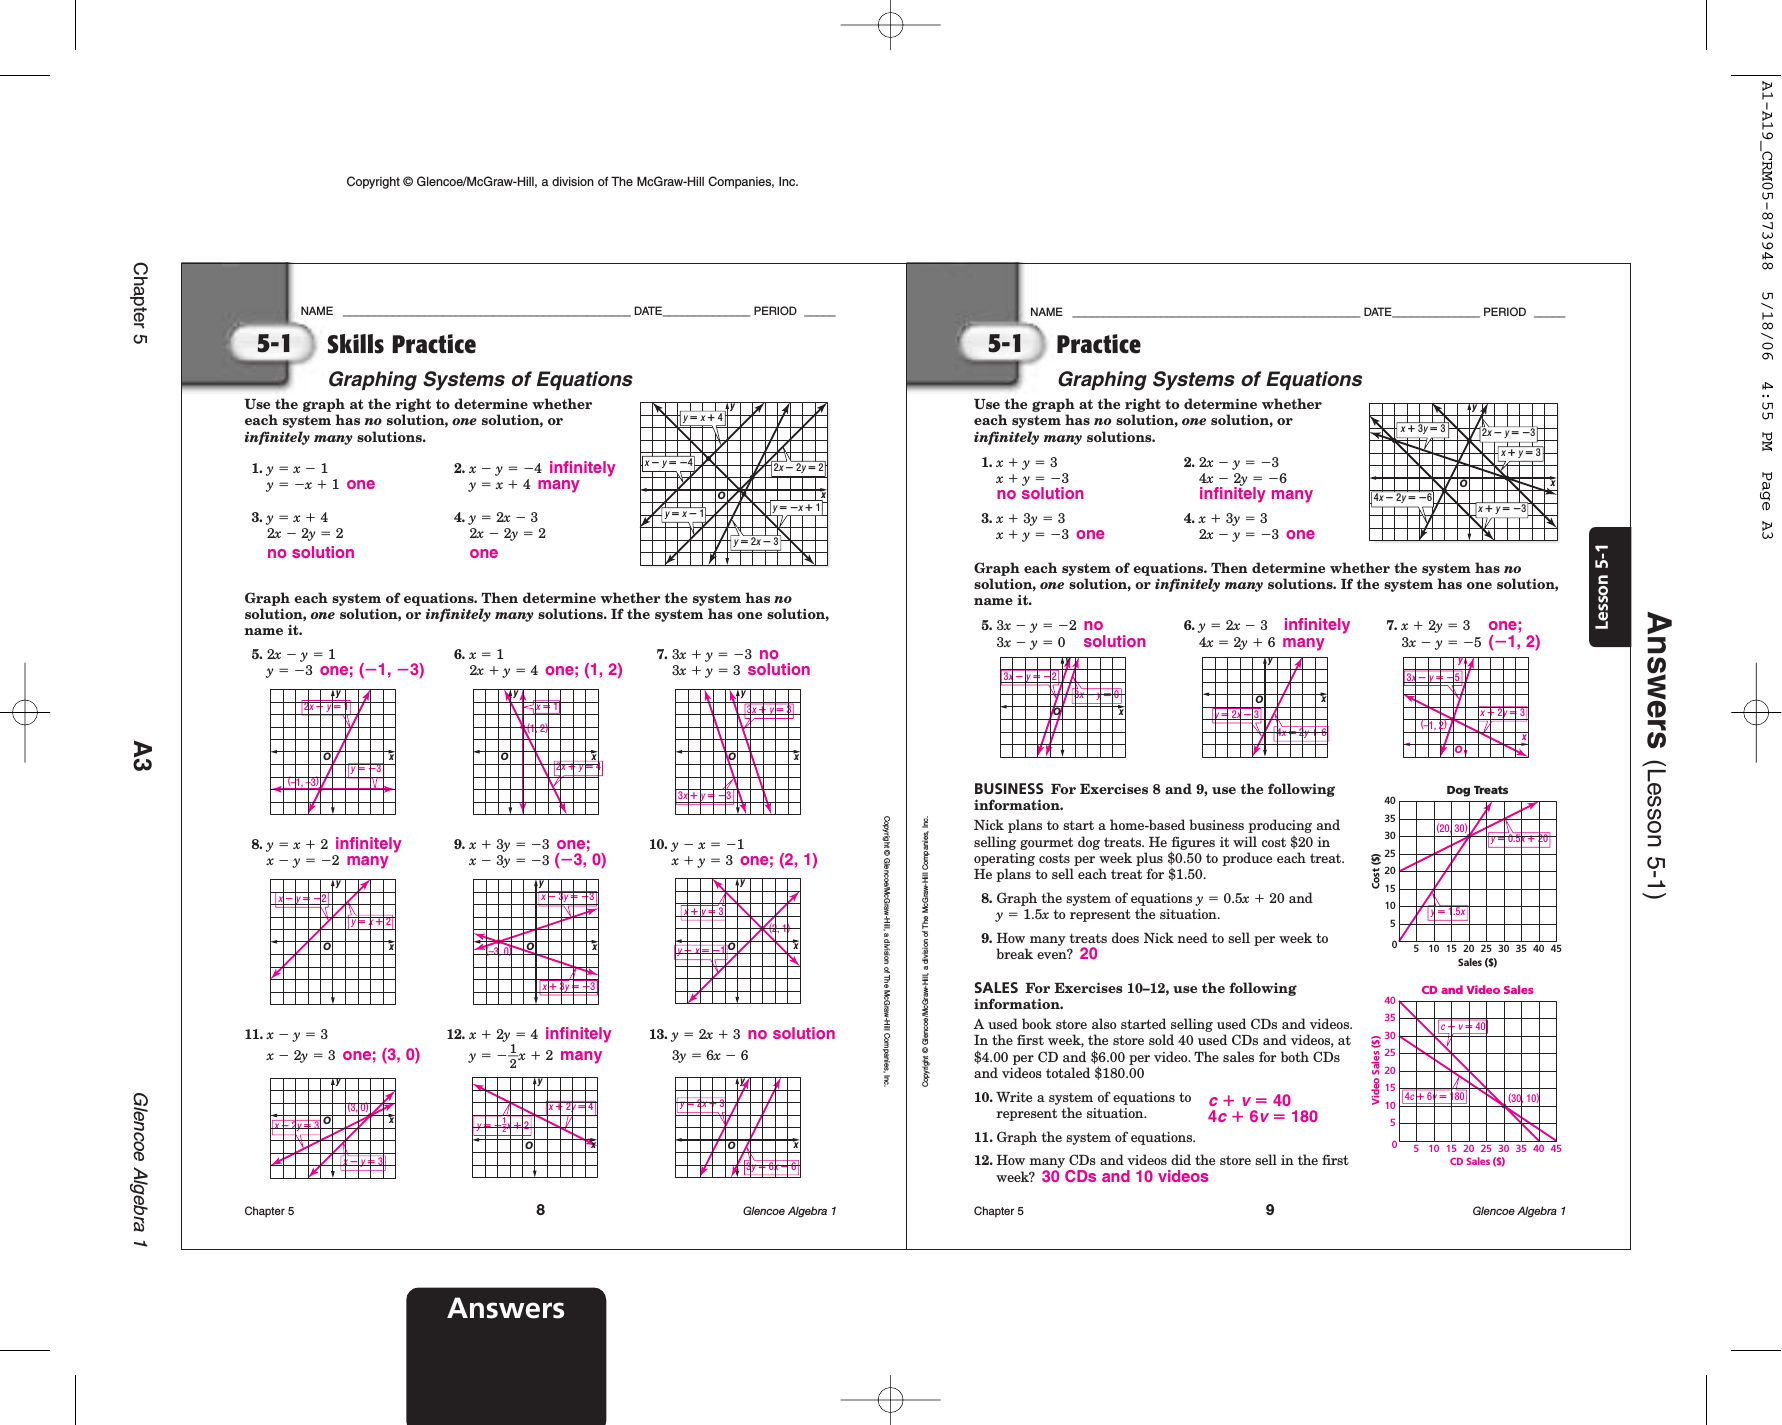 6 1 Skills Practice Graphing Systems Of Equations